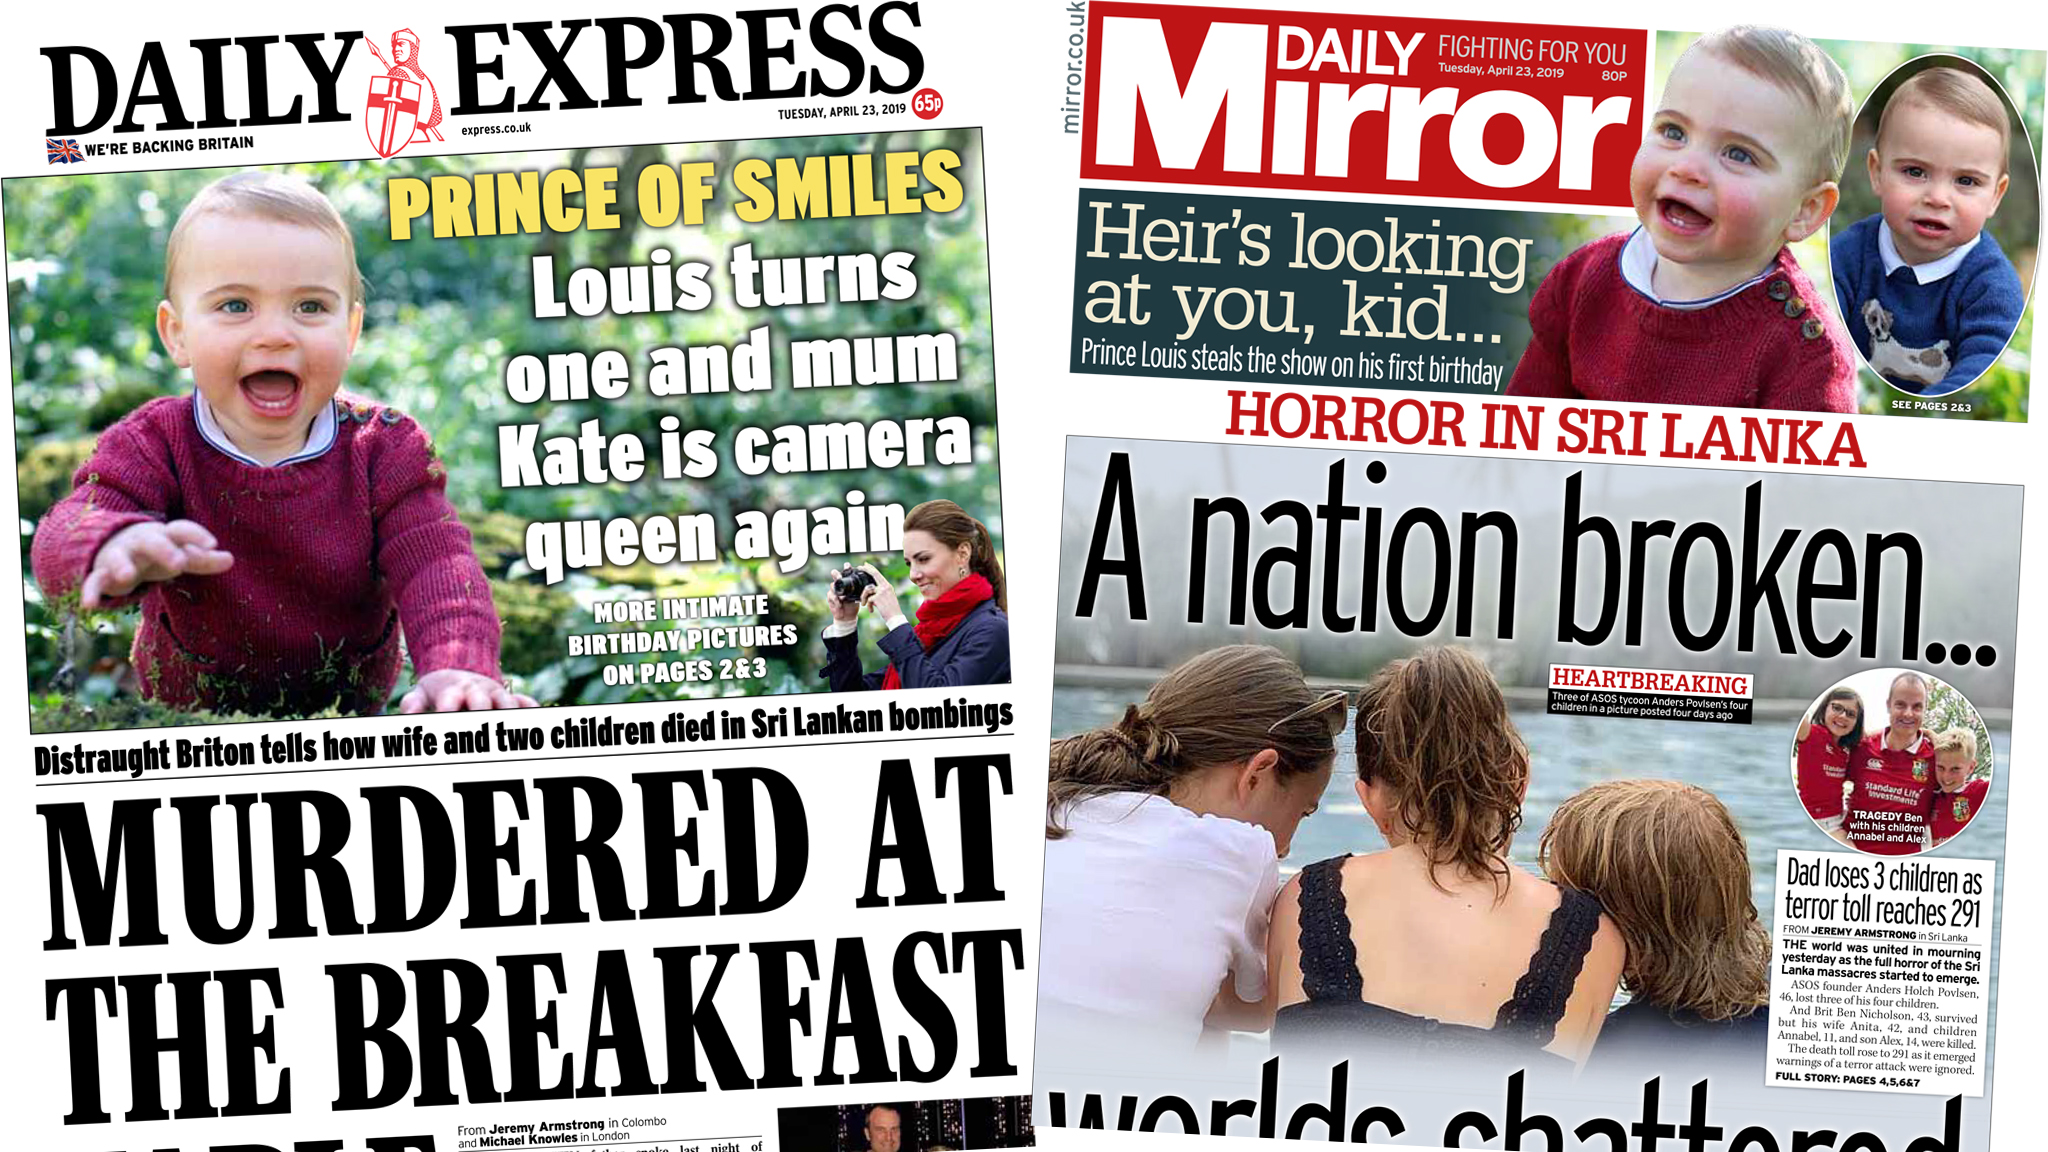 Newspaper headlines: 'A nation broken' by bombings